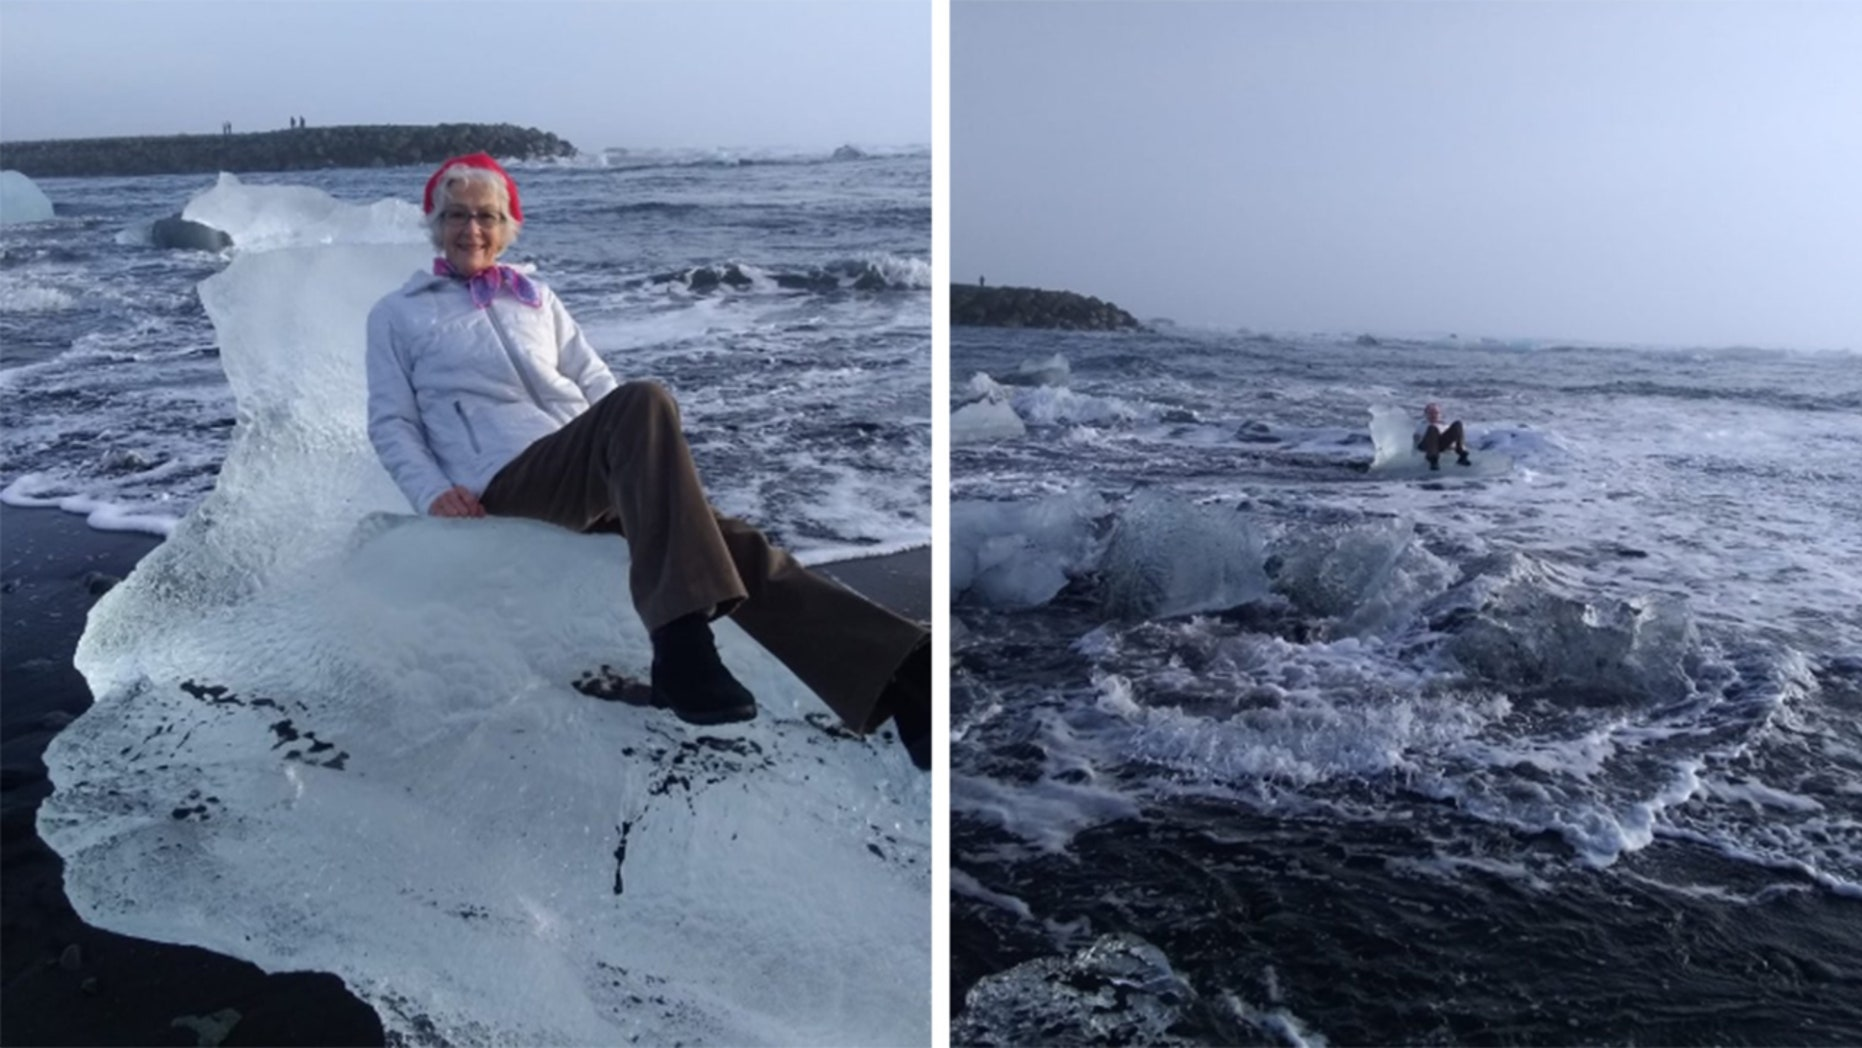 Woman sits on chair-shaped ice, floats away